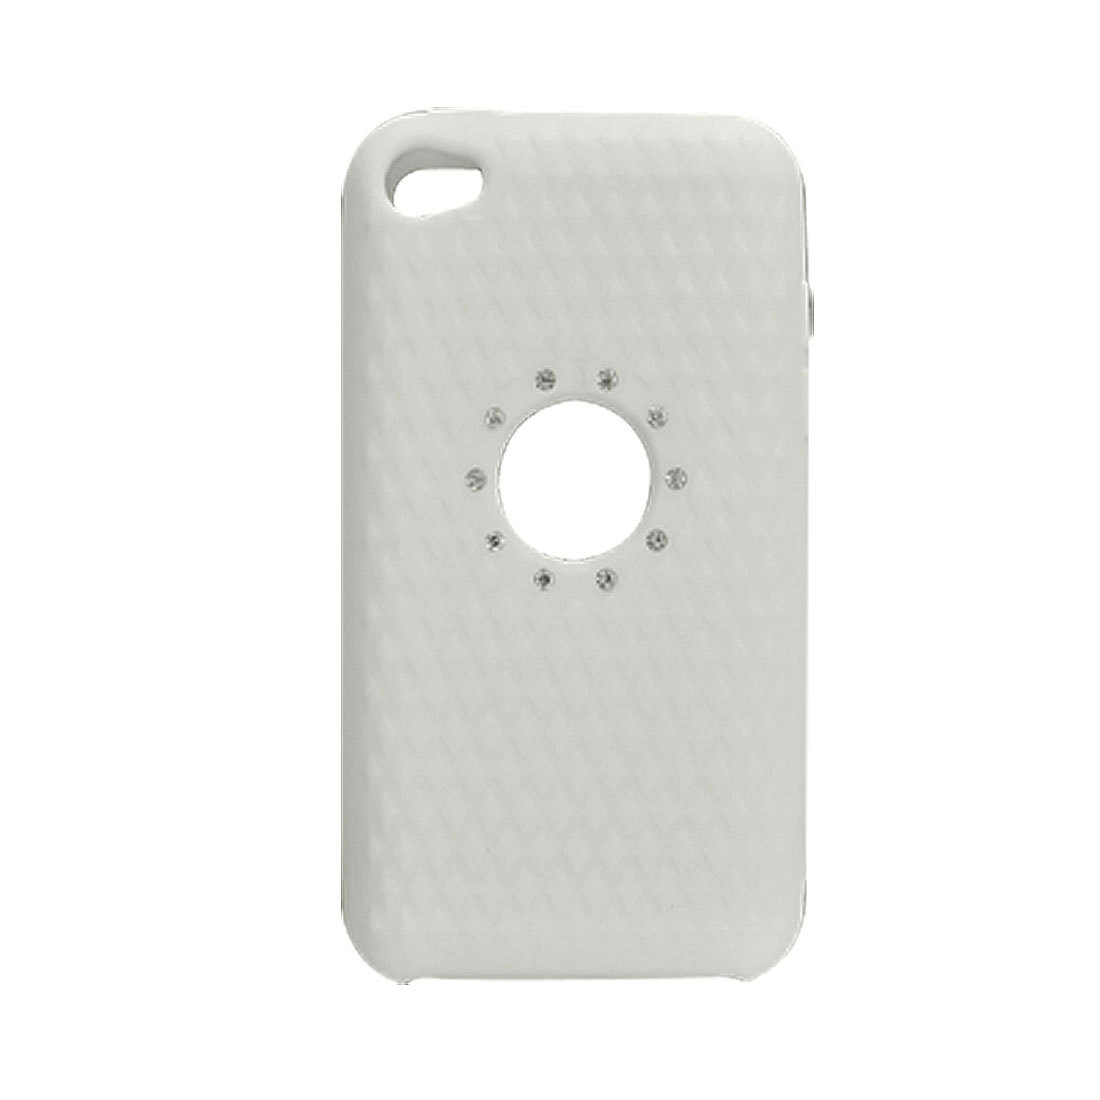 Rhinestone White Rhombus Silicone Skin for iPod Touch 4G